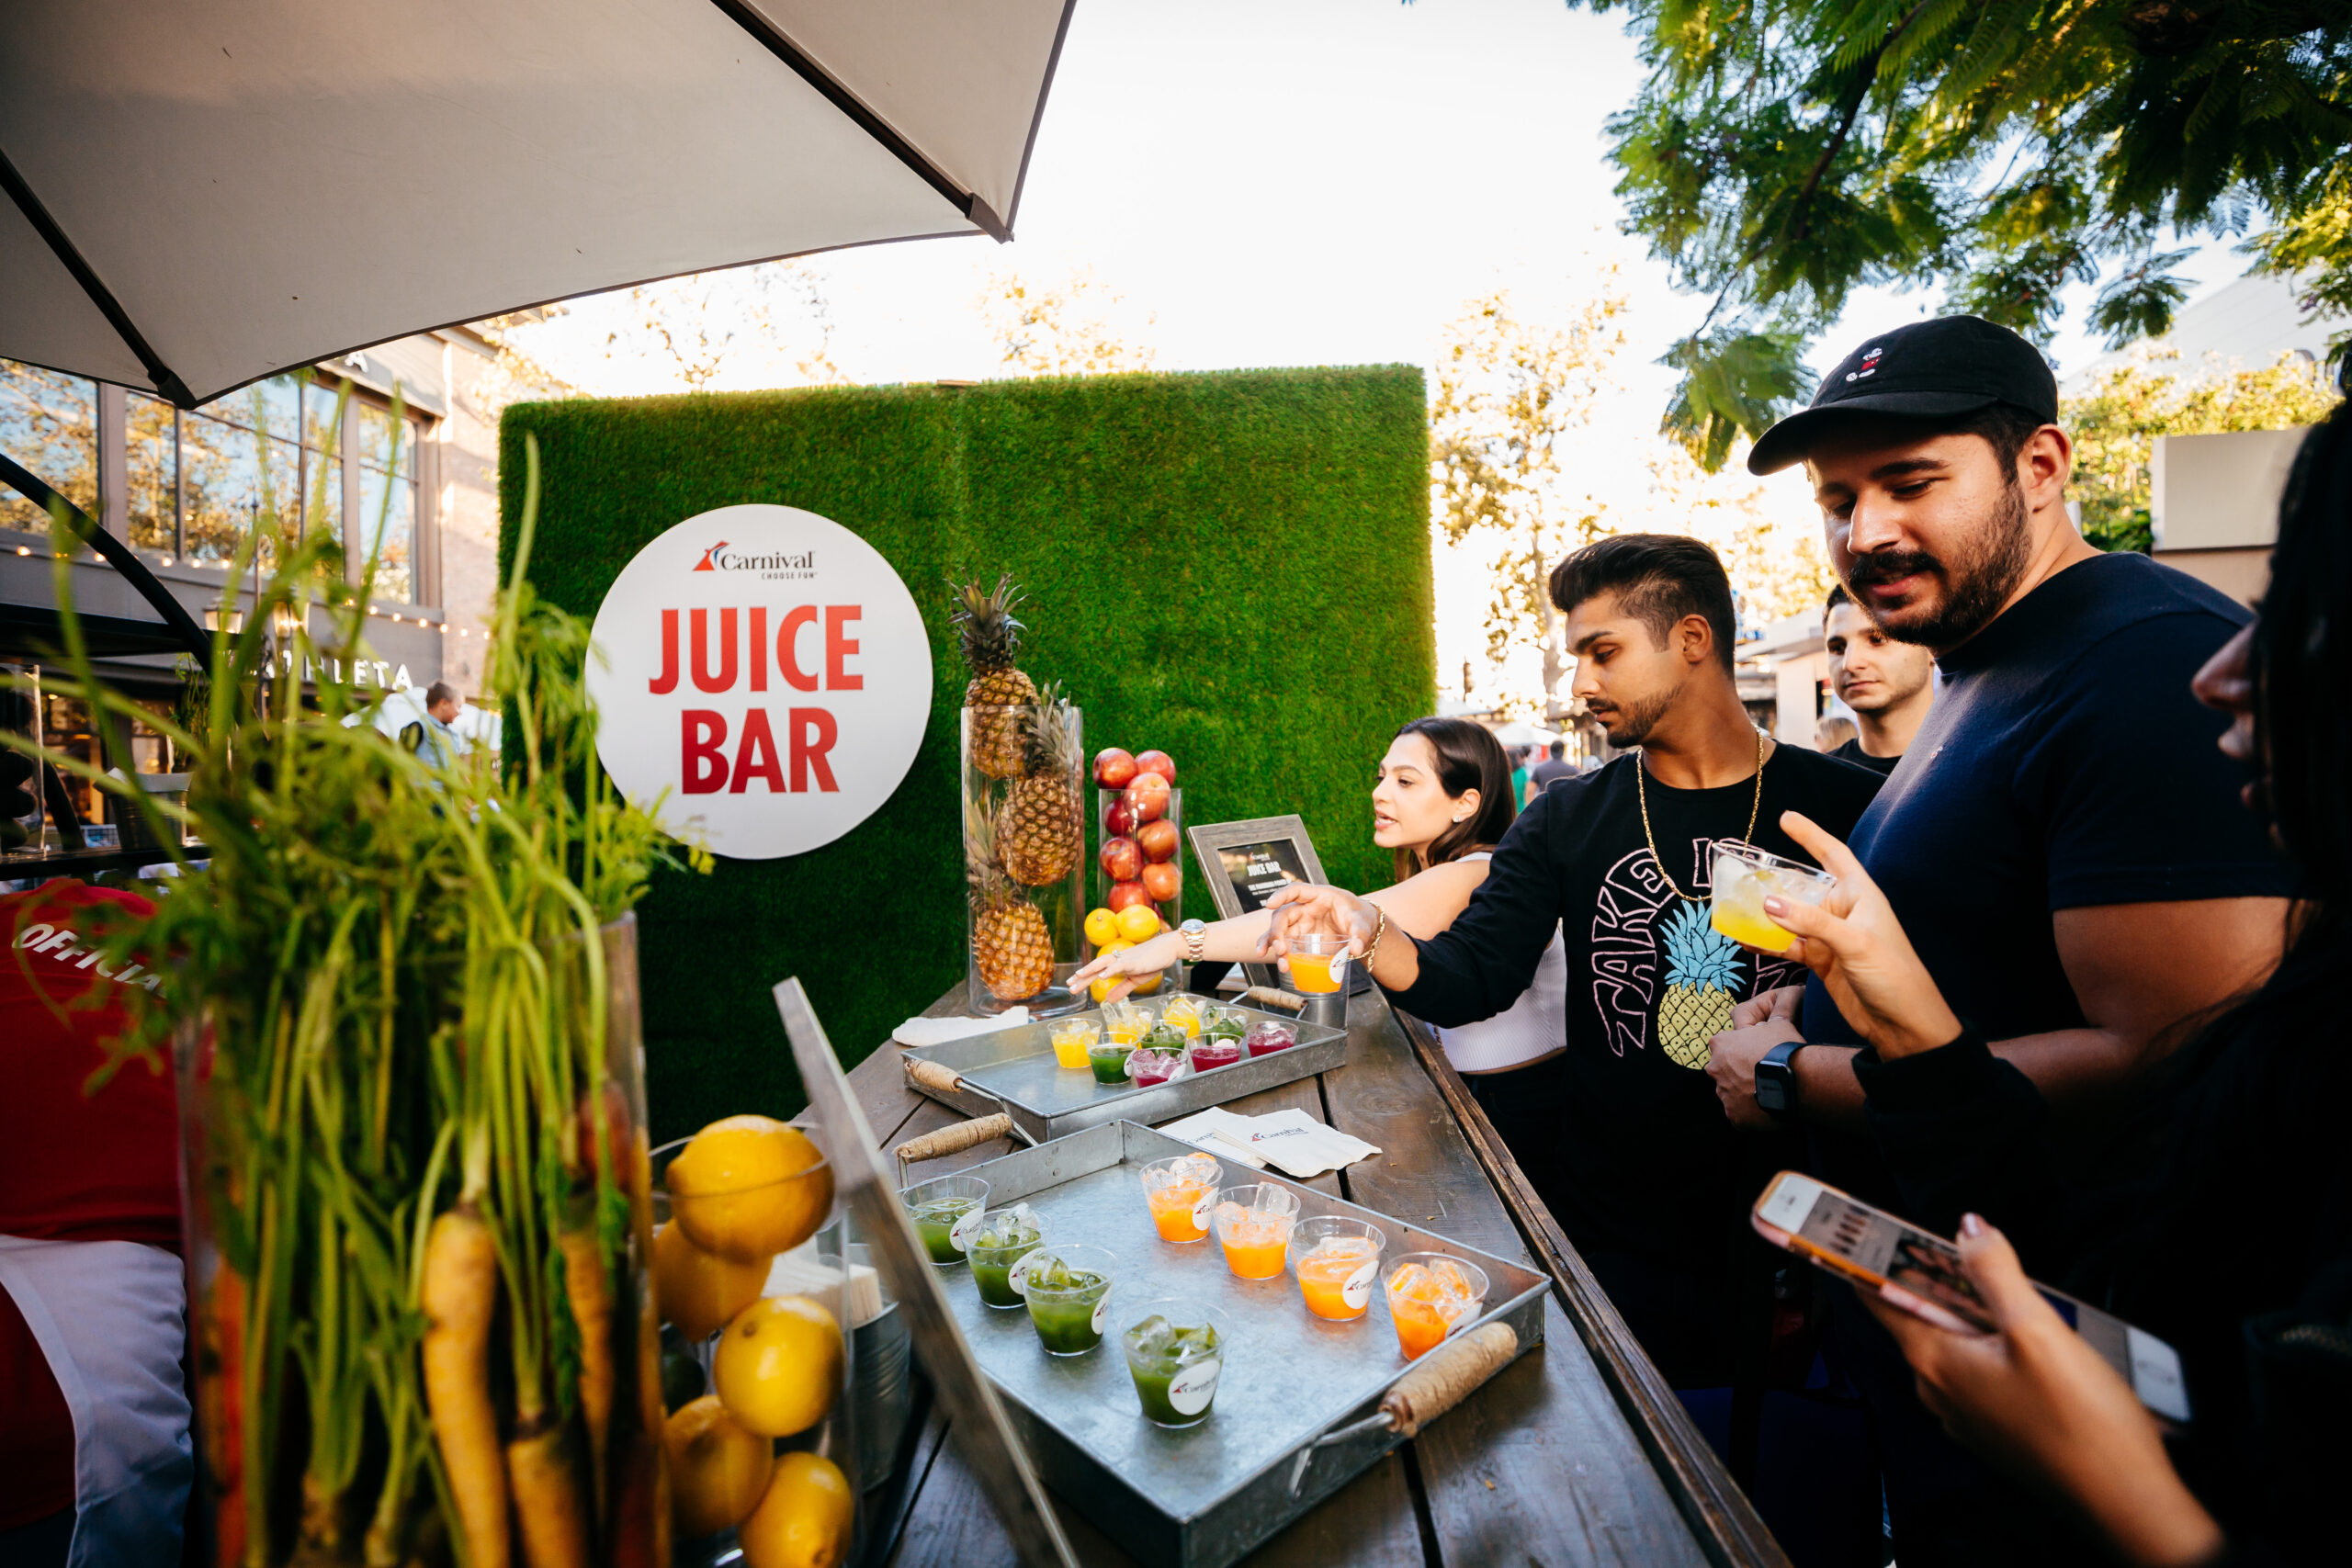 juice bar for carnival event production company